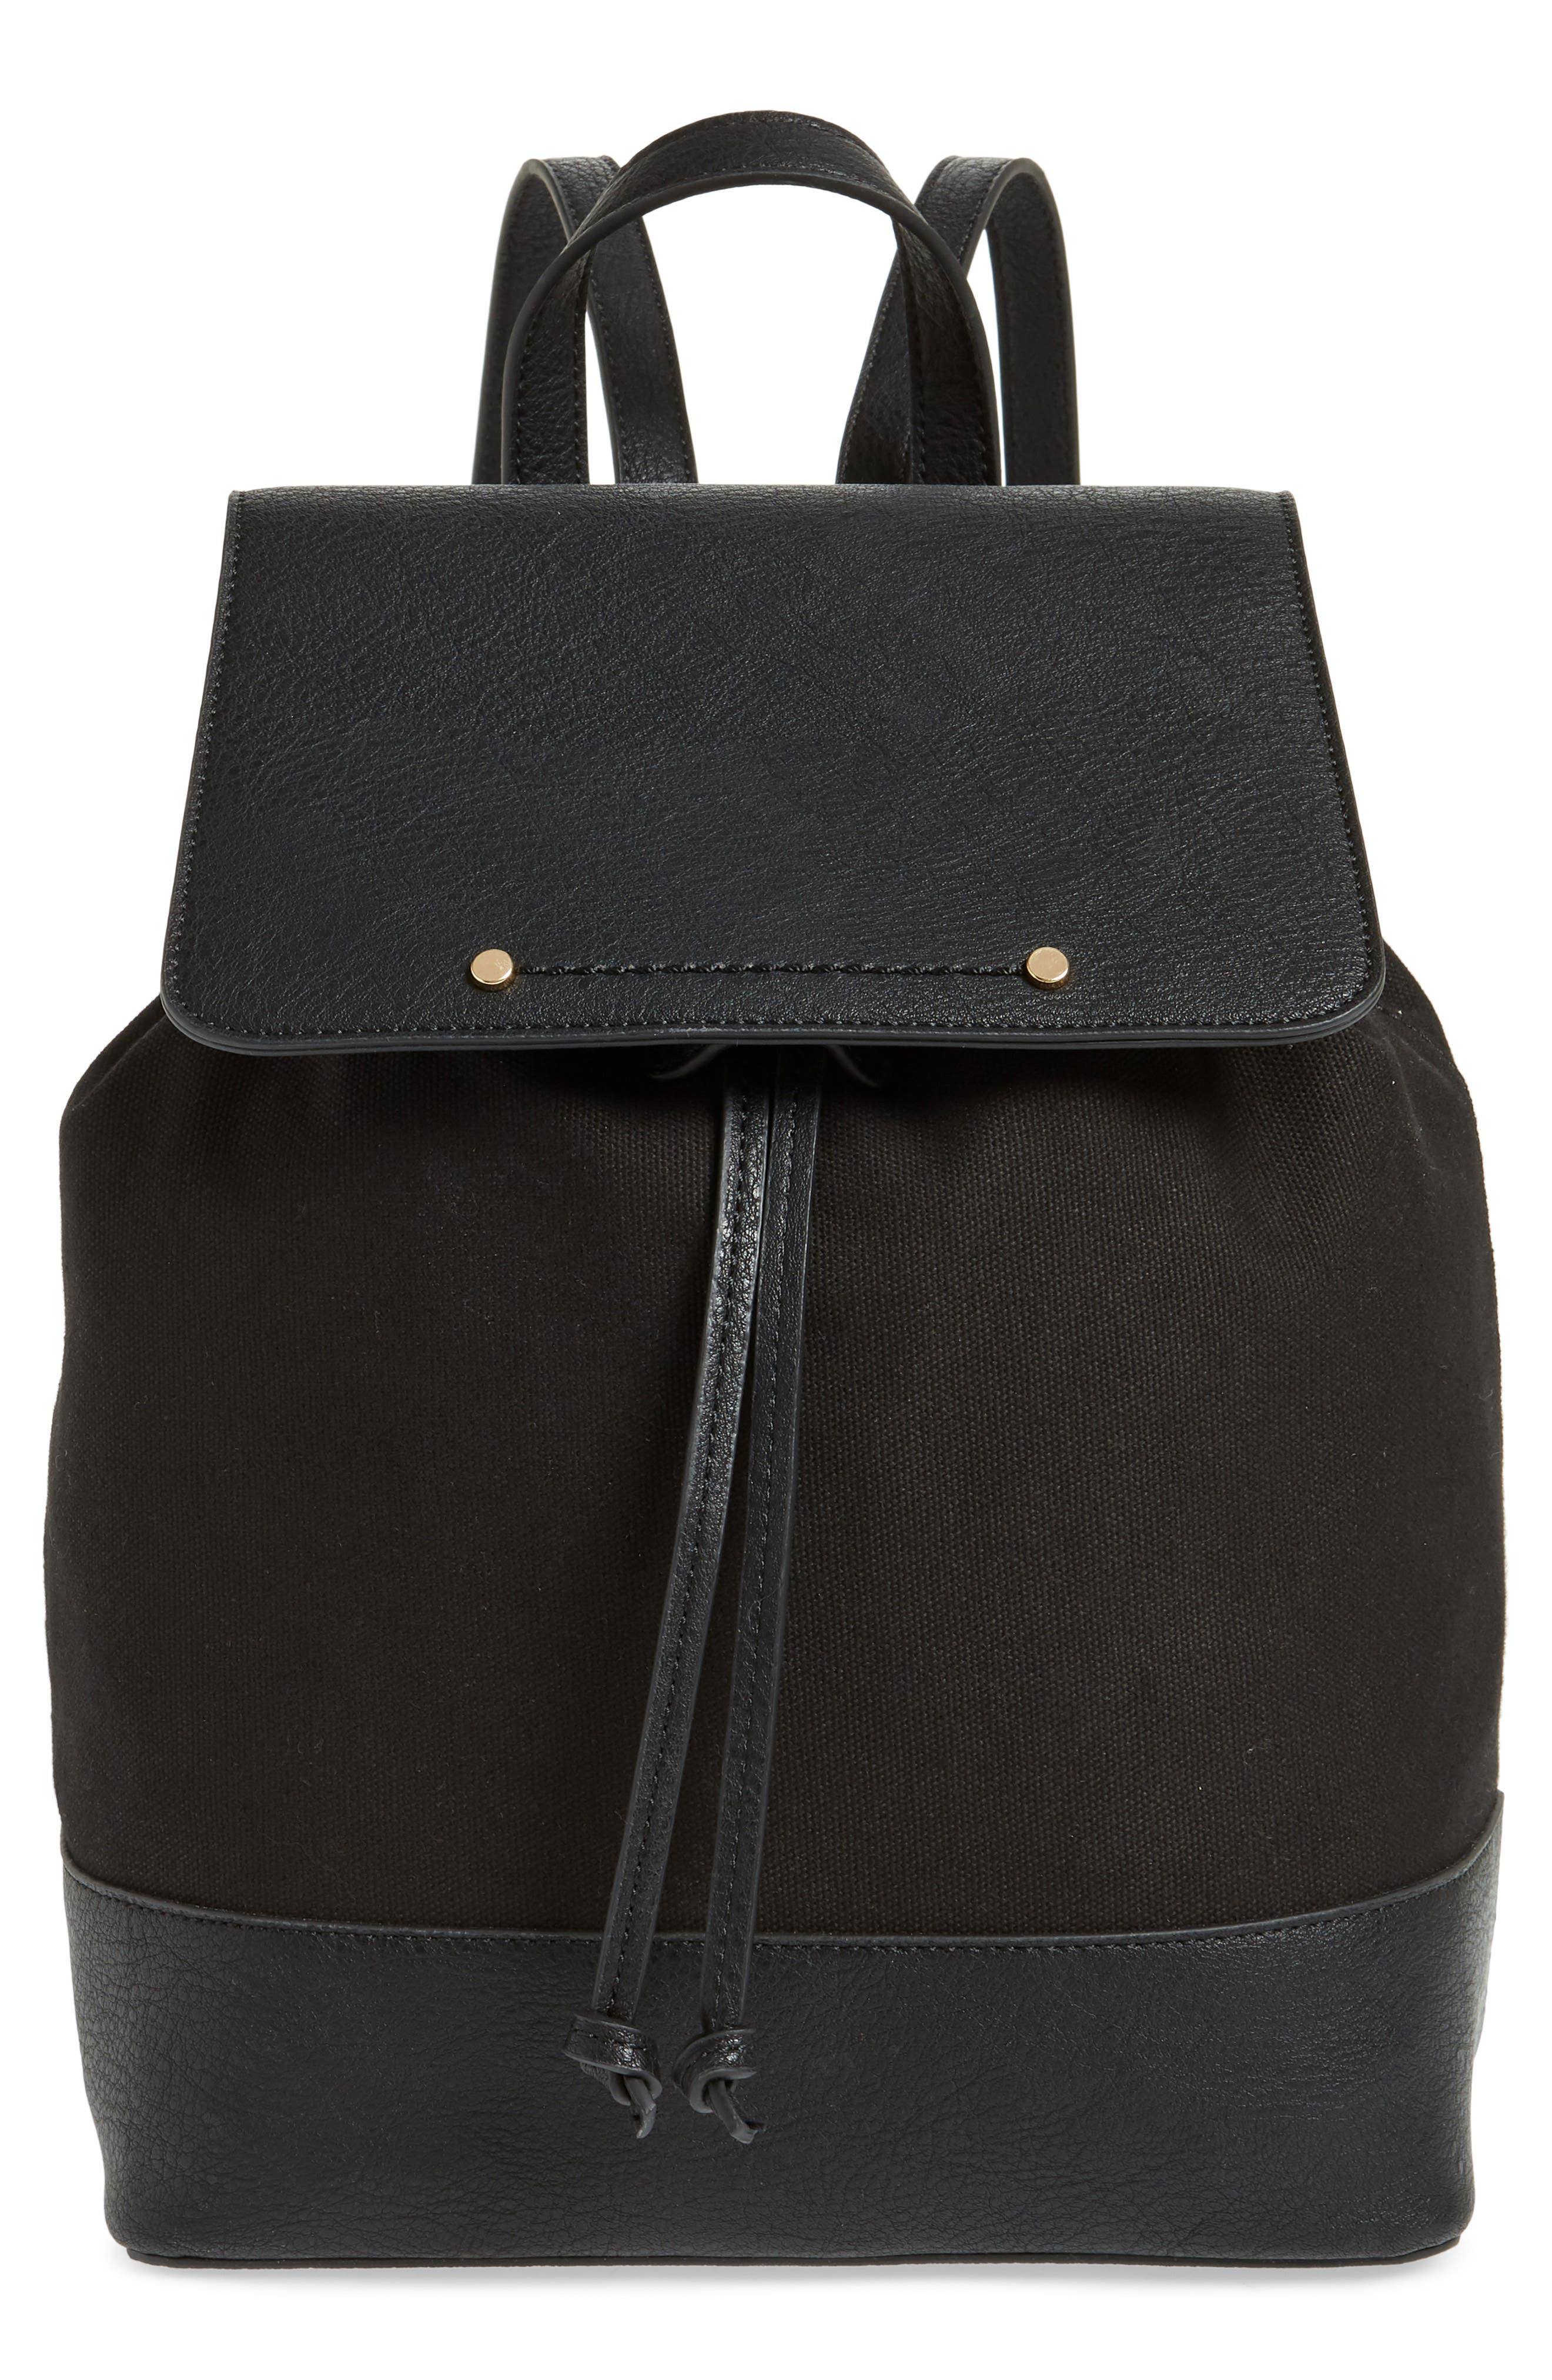 Sole Society Canvas & Faux Leather Backpack - Black